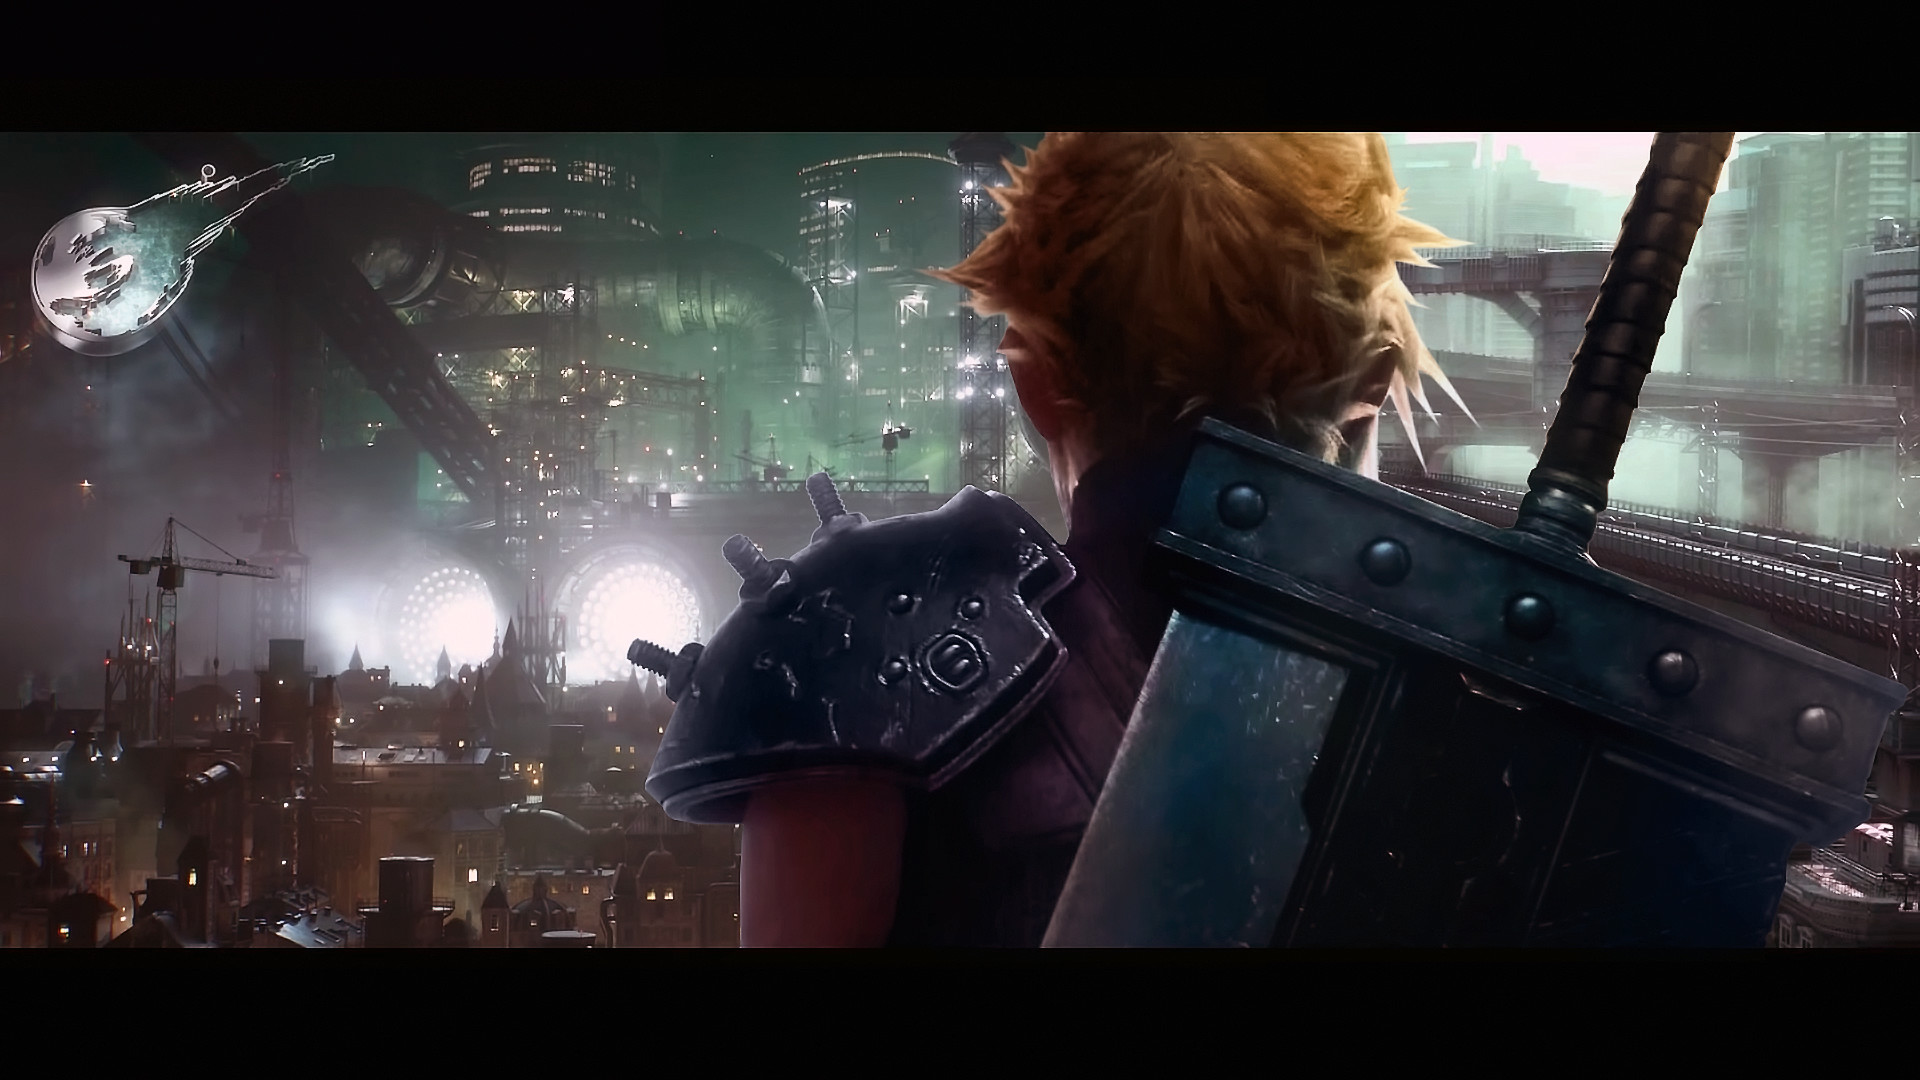 1920x1080 Final Fantasy VII Remake Wallpaper